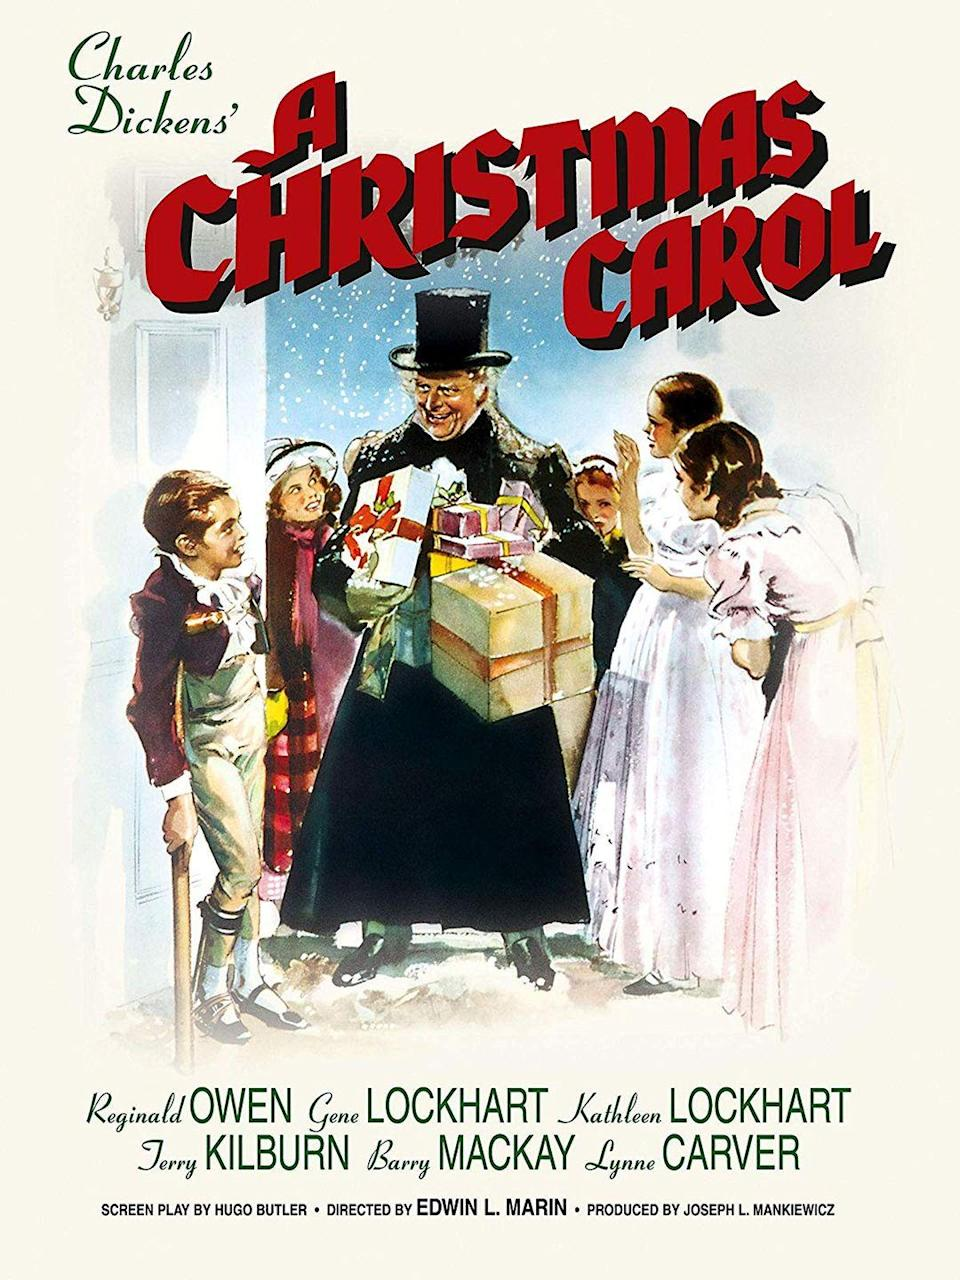 """<p>This 1938 movie is one of the earlier (and better) full-length film adaptations of the Charles Dickens classic.</p><p><a class=""""link rapid-noclick-resp"""" href=""""https://www.amazon.com/Christmas-Carol-Gene-Lockhart/dp/B002B2D9M6/?tag=syn-yahoo-20&ascsubtag=%5Bartid%7C10055.g.1315%5Bsrc%7Cyahoo-us"""" rel=""""nofollow noopener"""" target=""""_blank"""" data-ylk=""""slk:WATCH NOW"""">WATCH NOW</a></p>"""